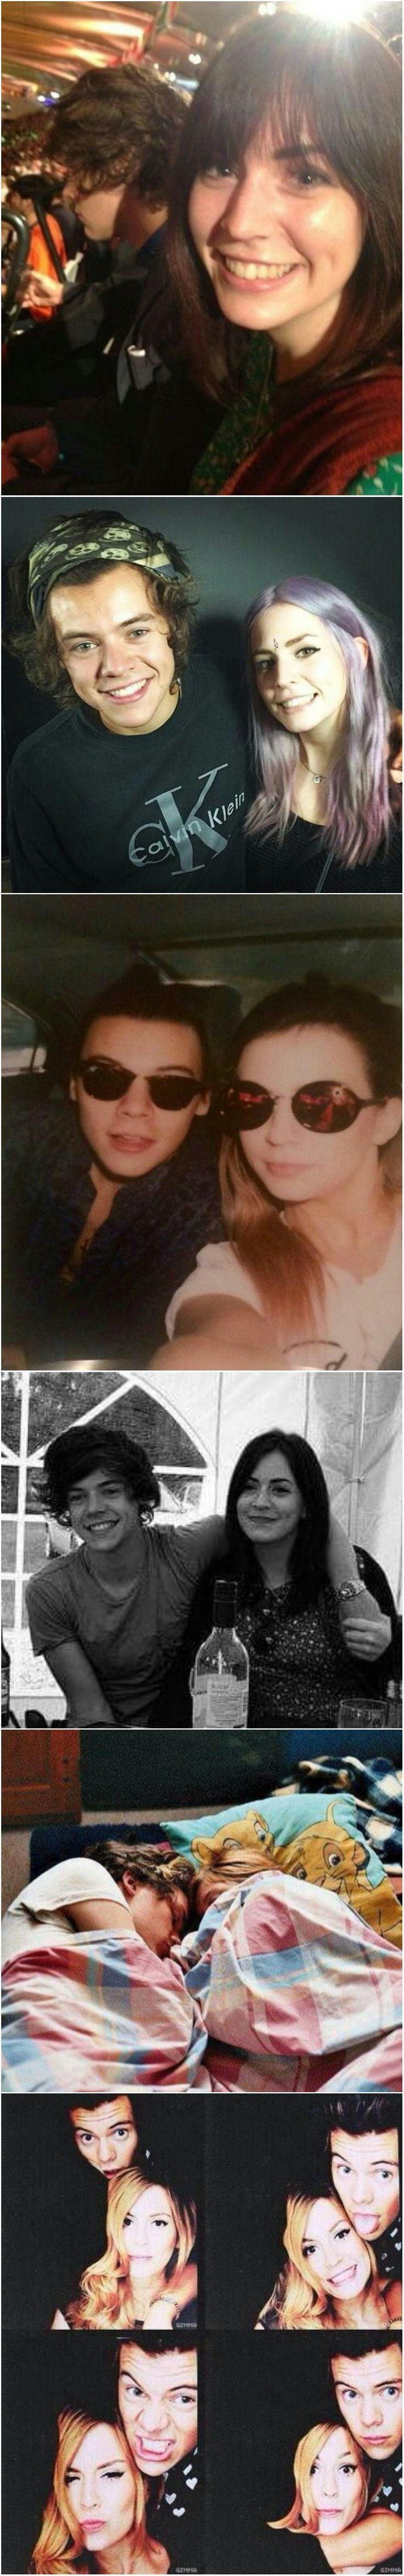 Harry and Gemma- Either they resemble each other a lot or they don't even look related at all.